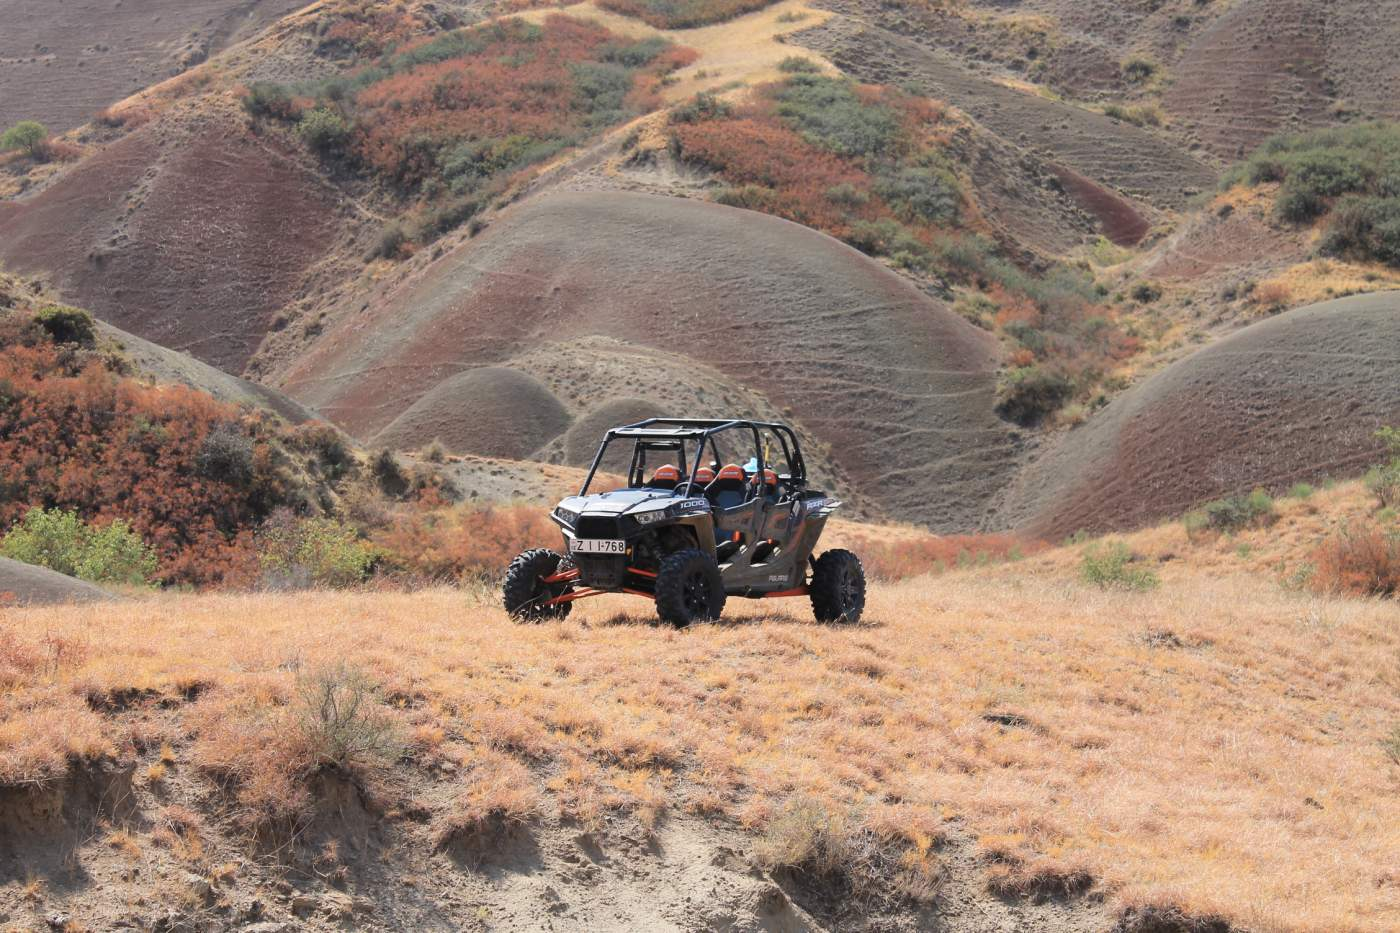 Georgien Side by Side Reise Offroad abenteuer Polaris